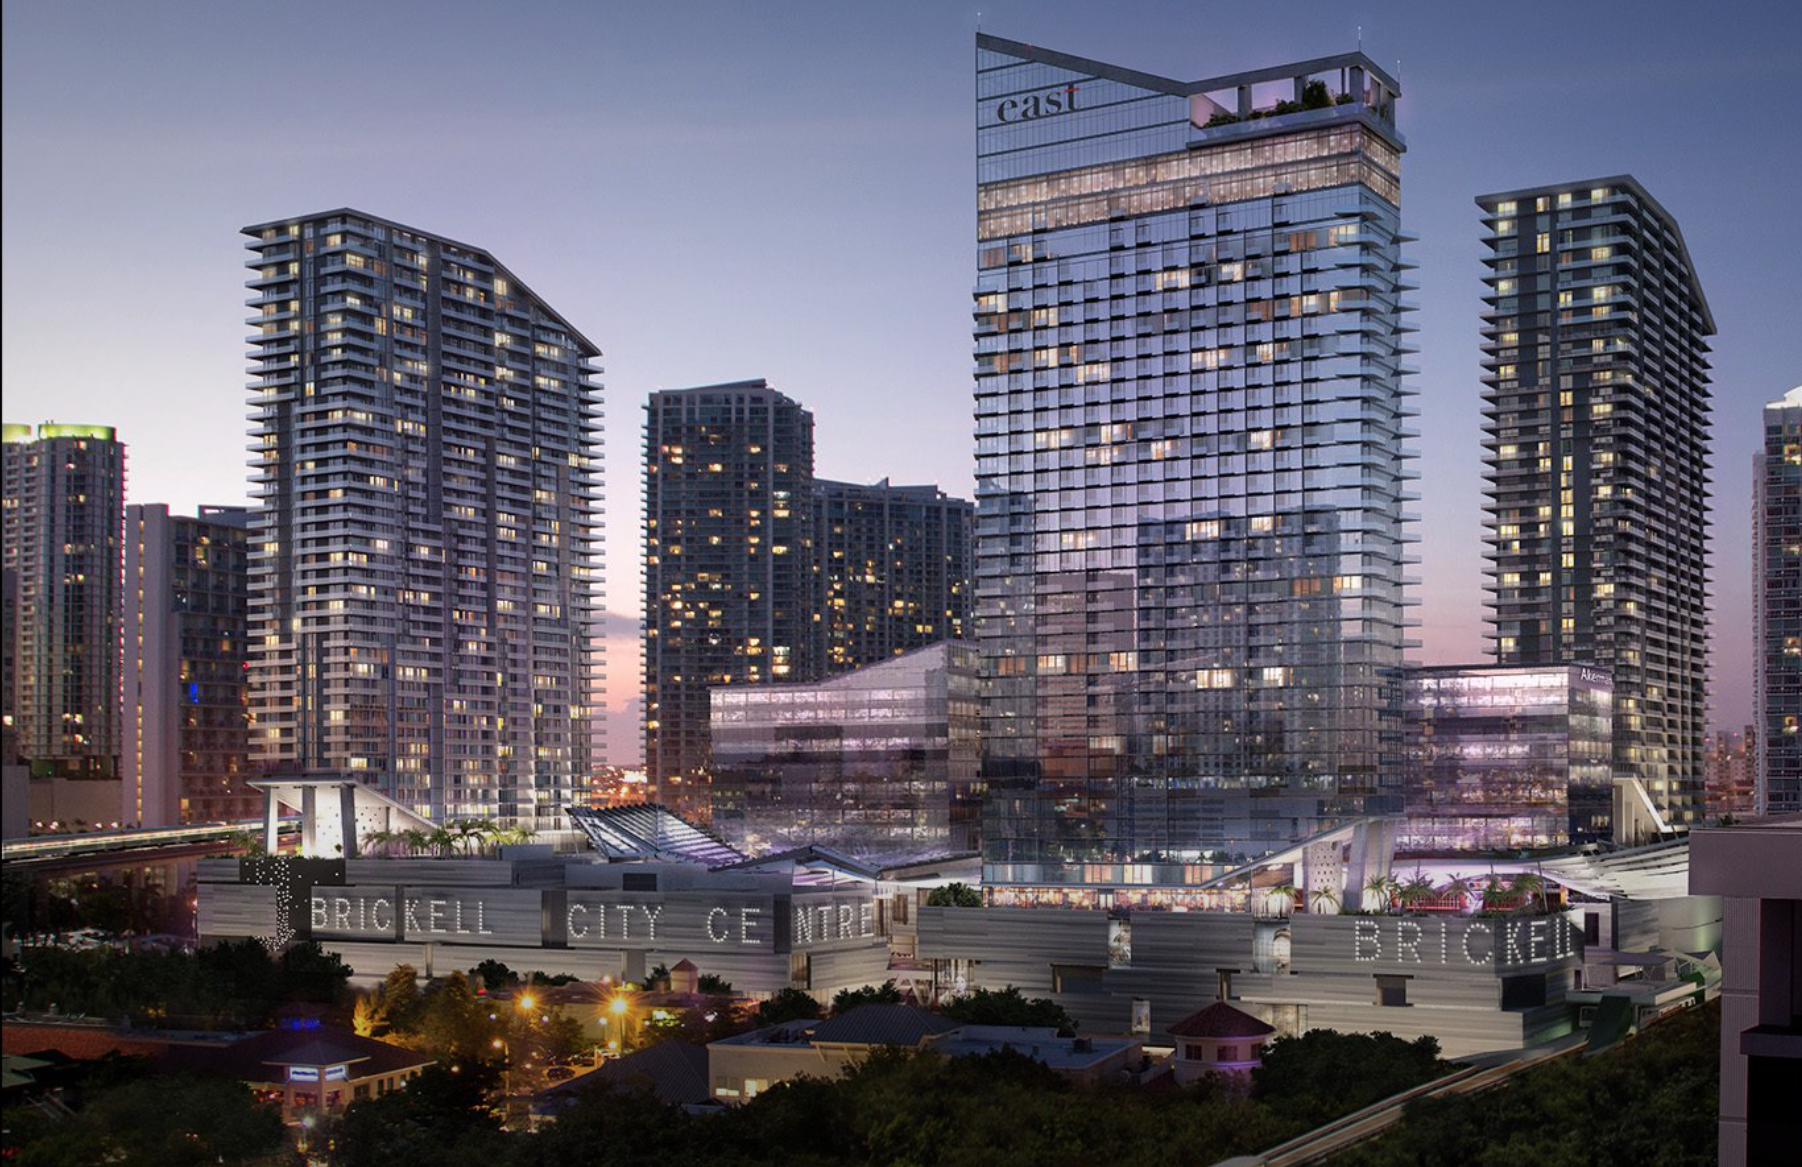 Brickell City Centre. Designed by Arquitectonica.